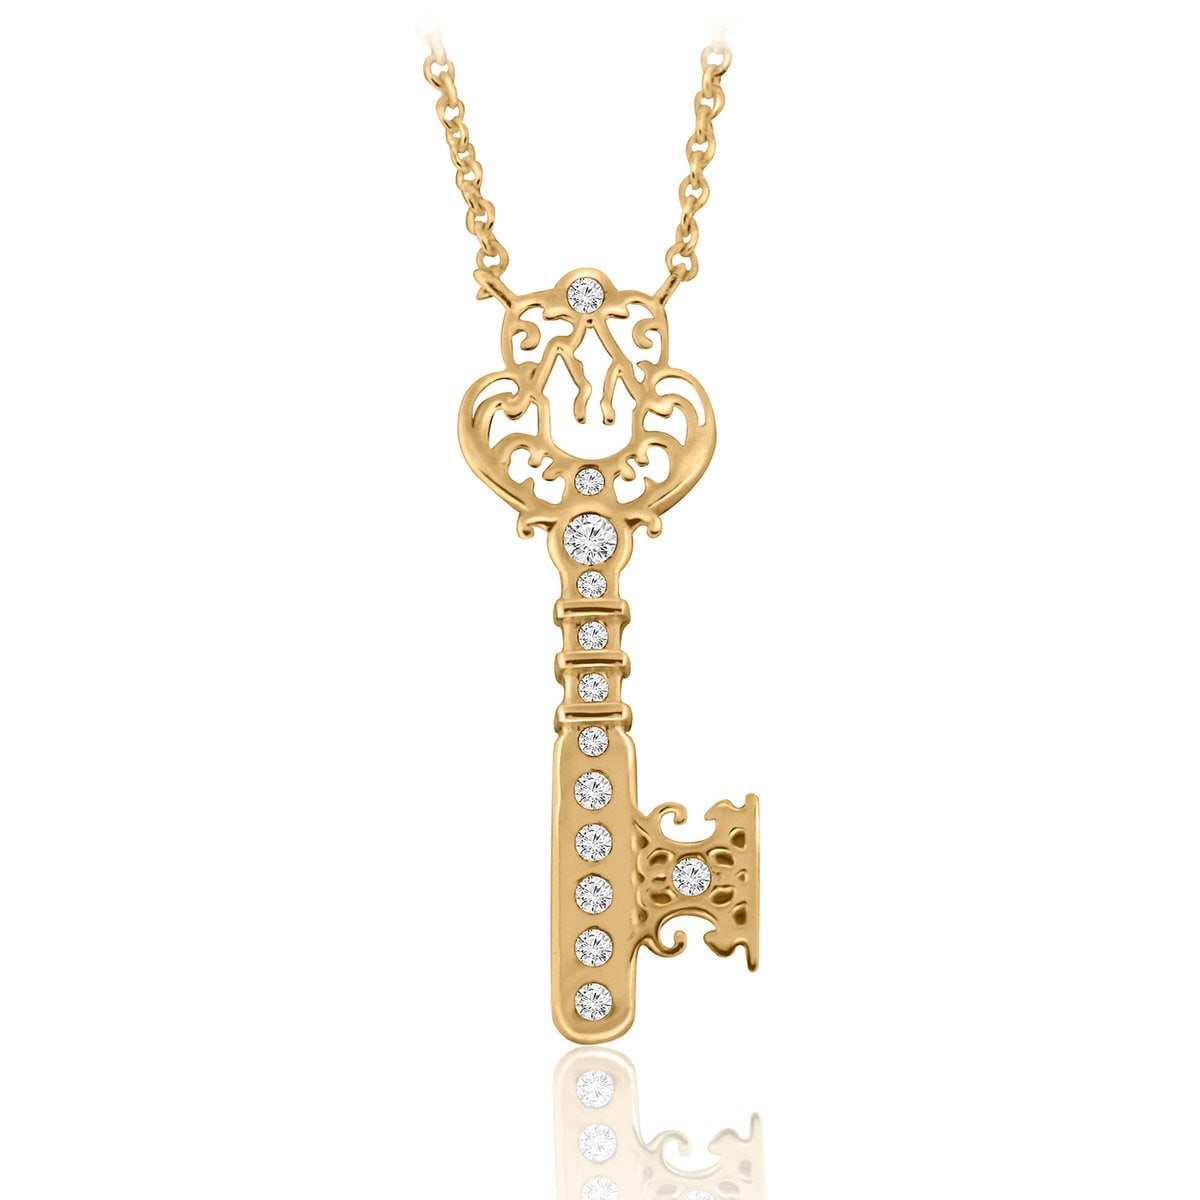 Castle Key Necklace - Disney Designer Jewelry Collection - Gold ...